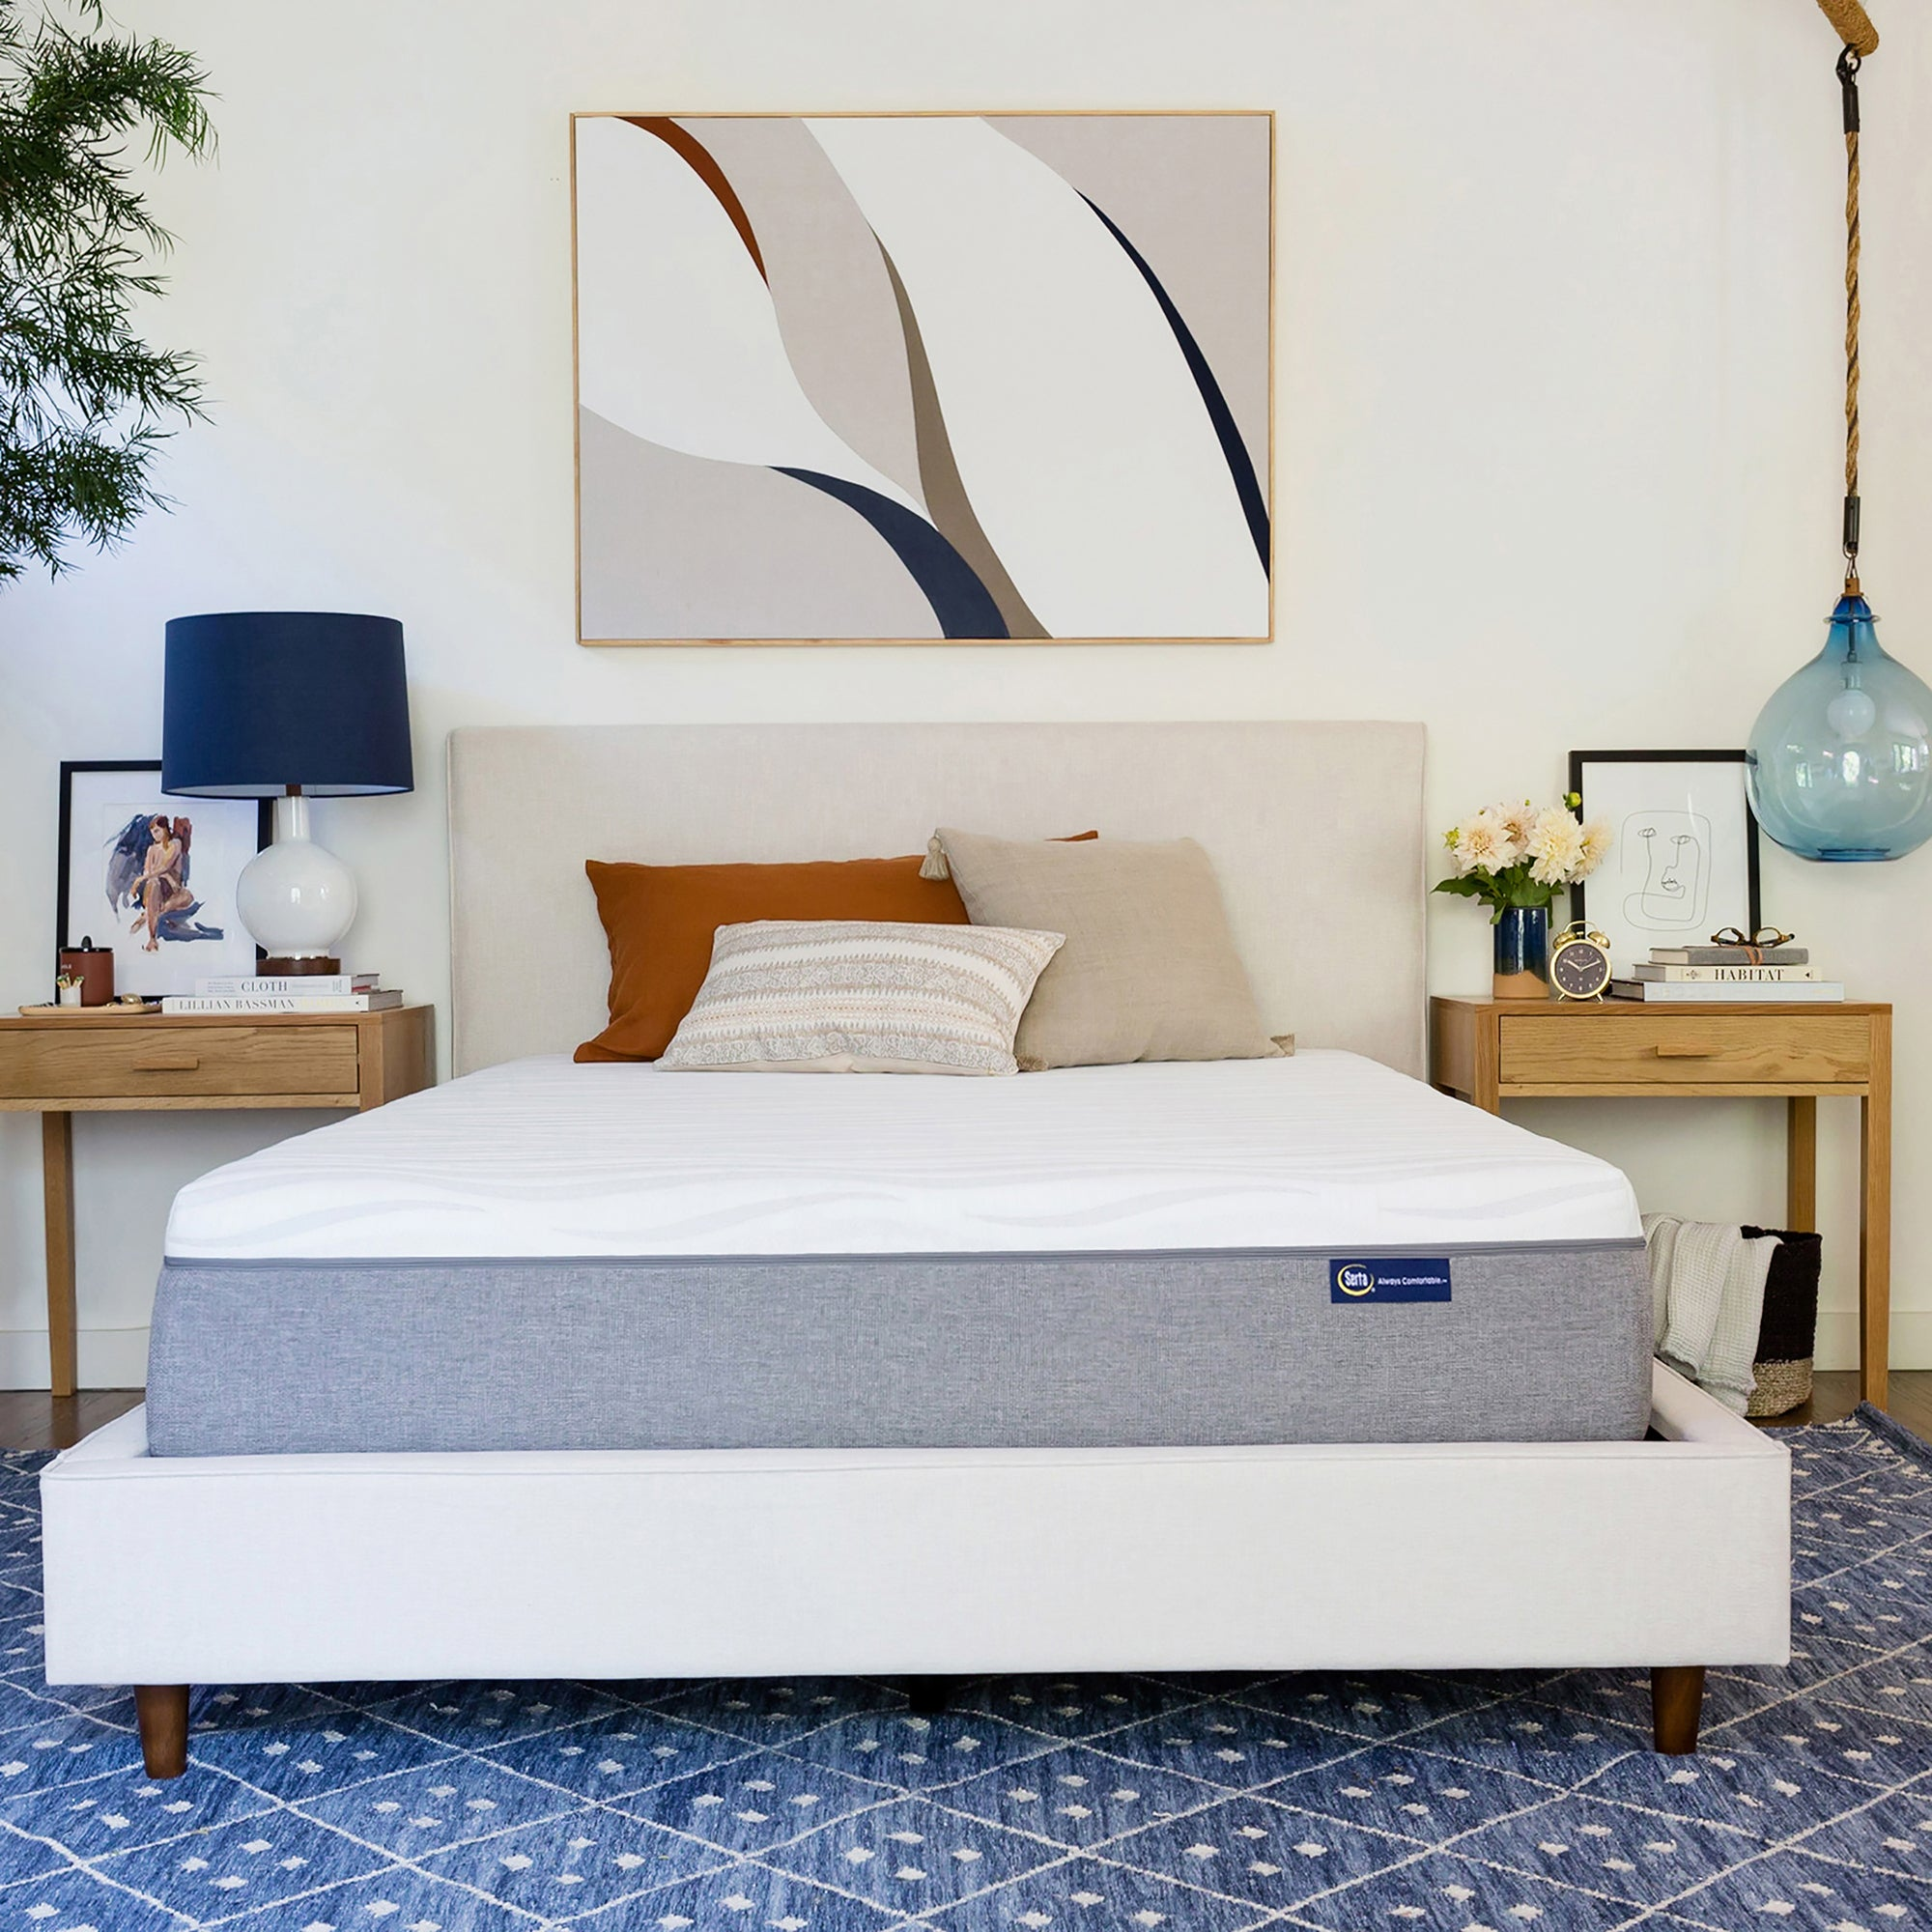 bacd serta bath overstock touch shipping topper inch bedding free of today mattress mattresses memory comfort product foam